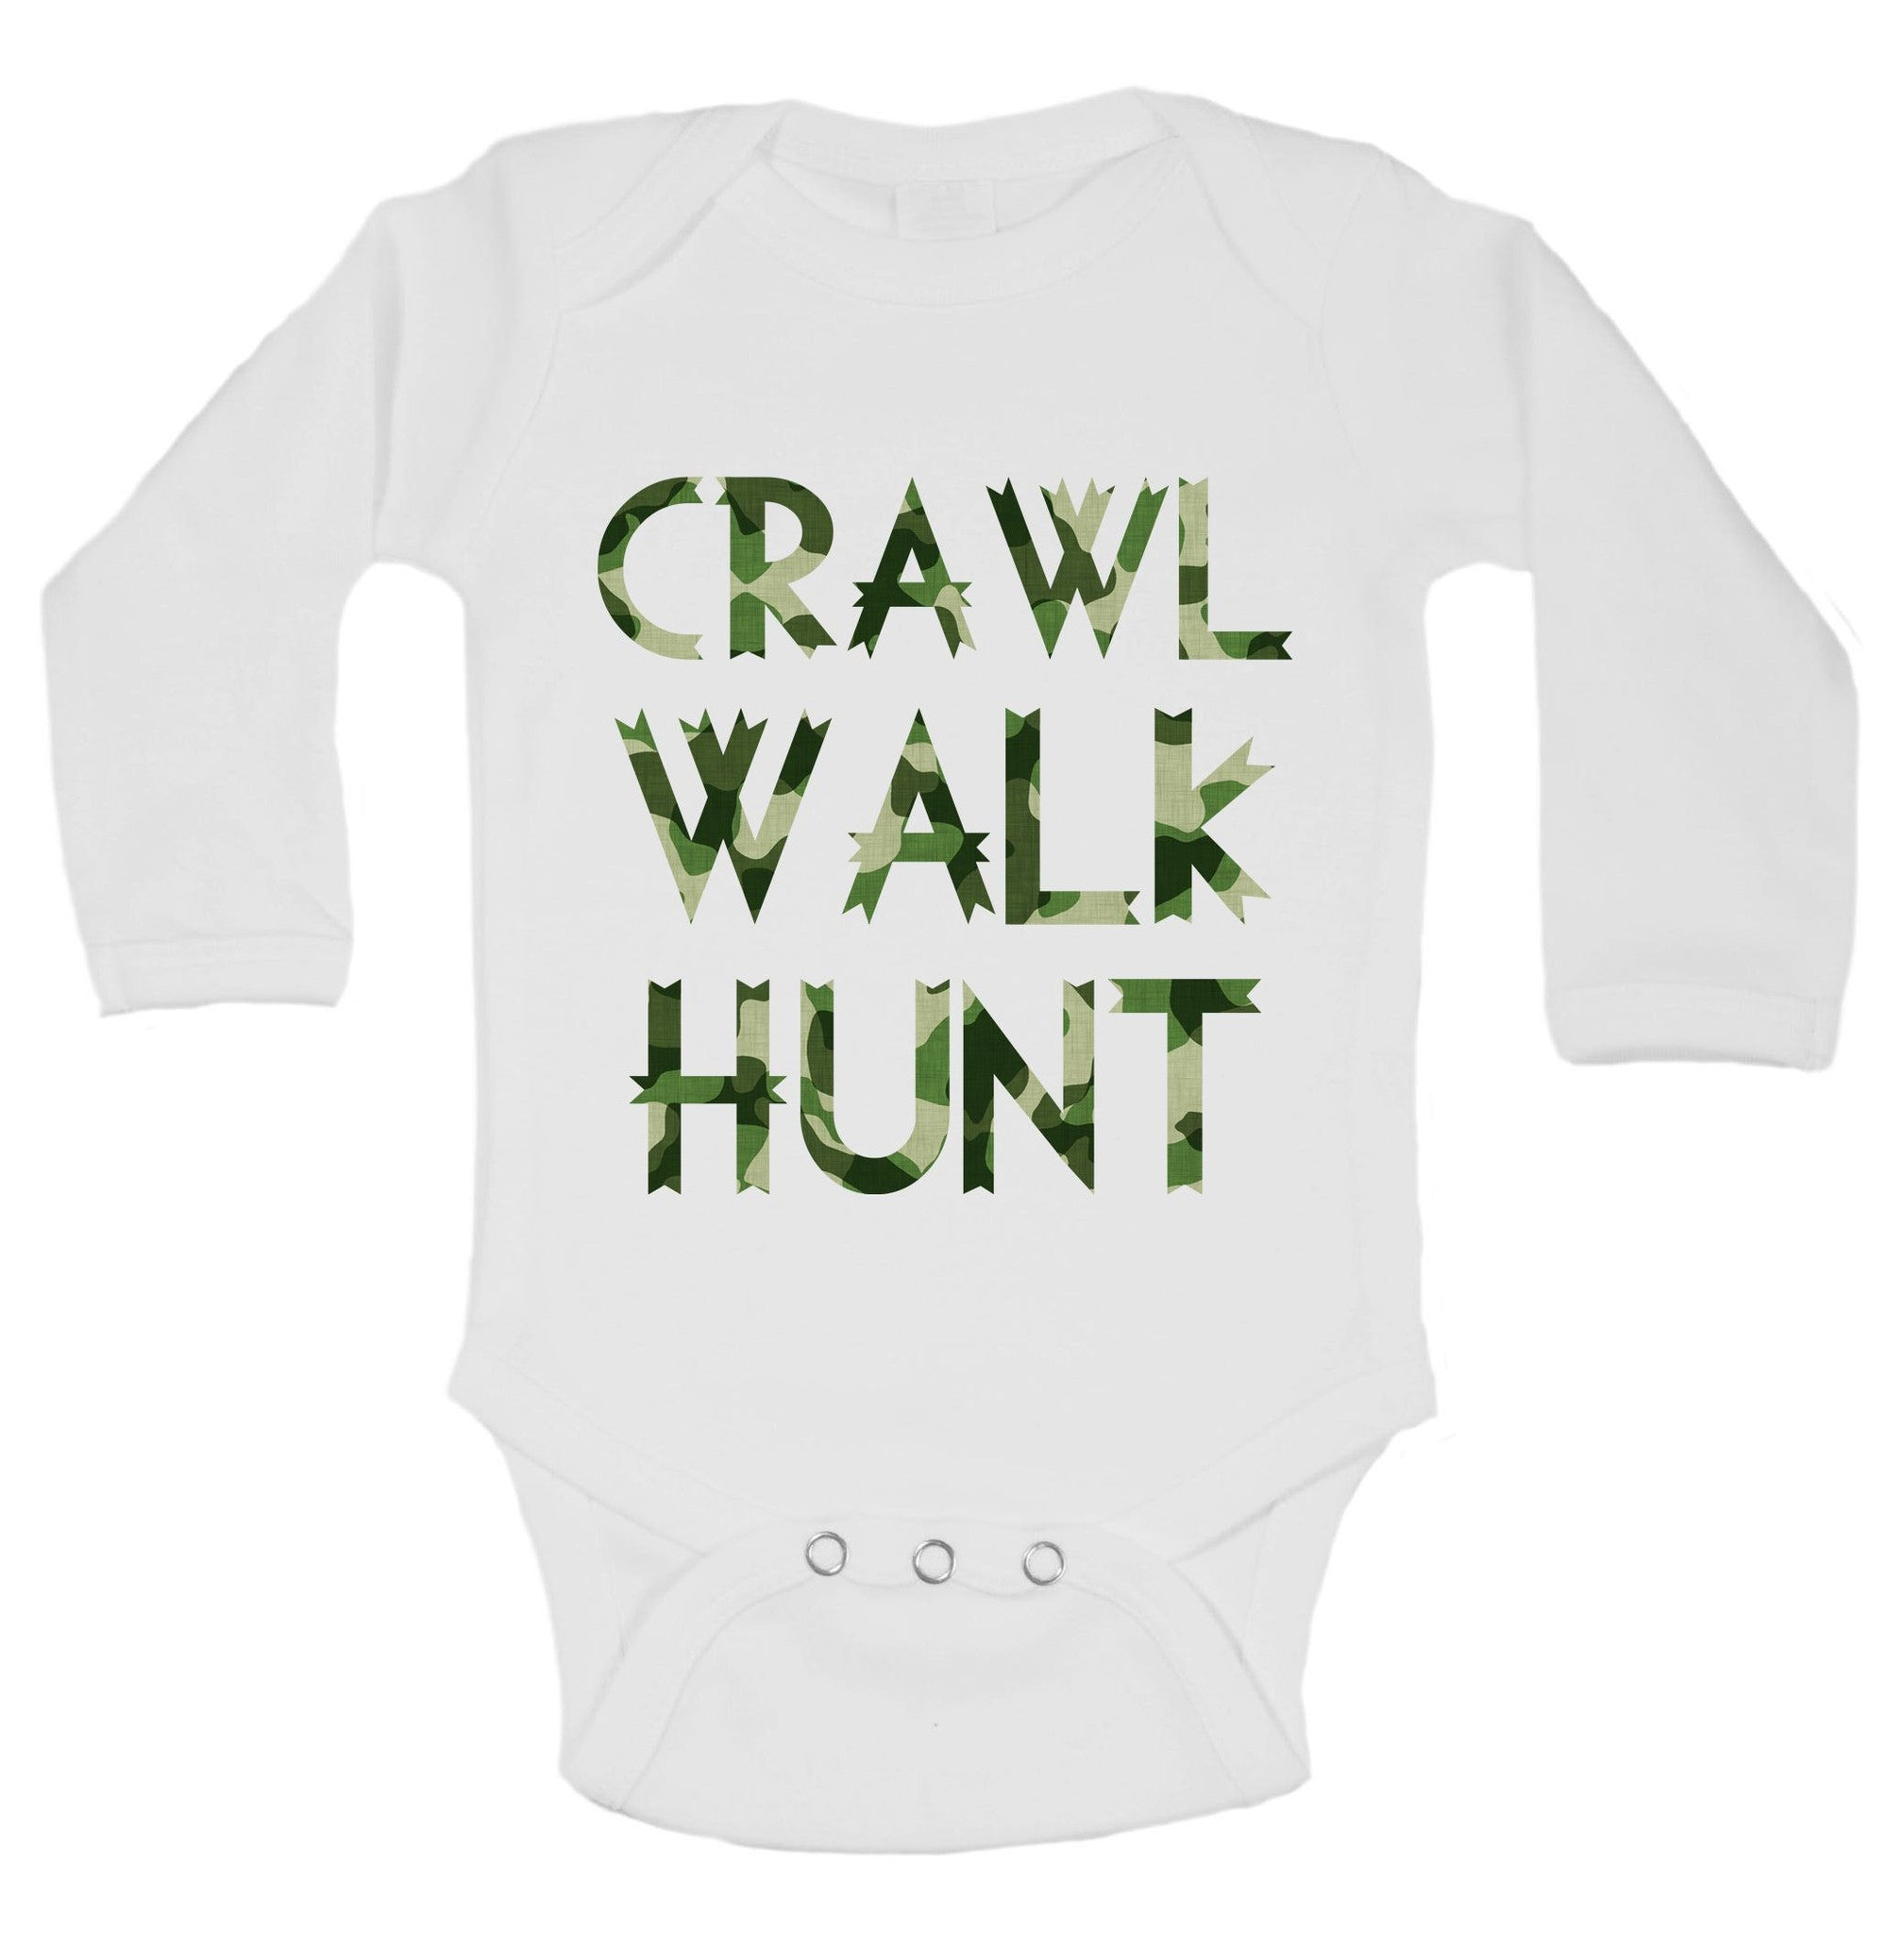 Crawl Walk Hunt Funny Kids Onesie - B206 - Funny Shirts Tank Tops Burnouts and Triblends  - 1